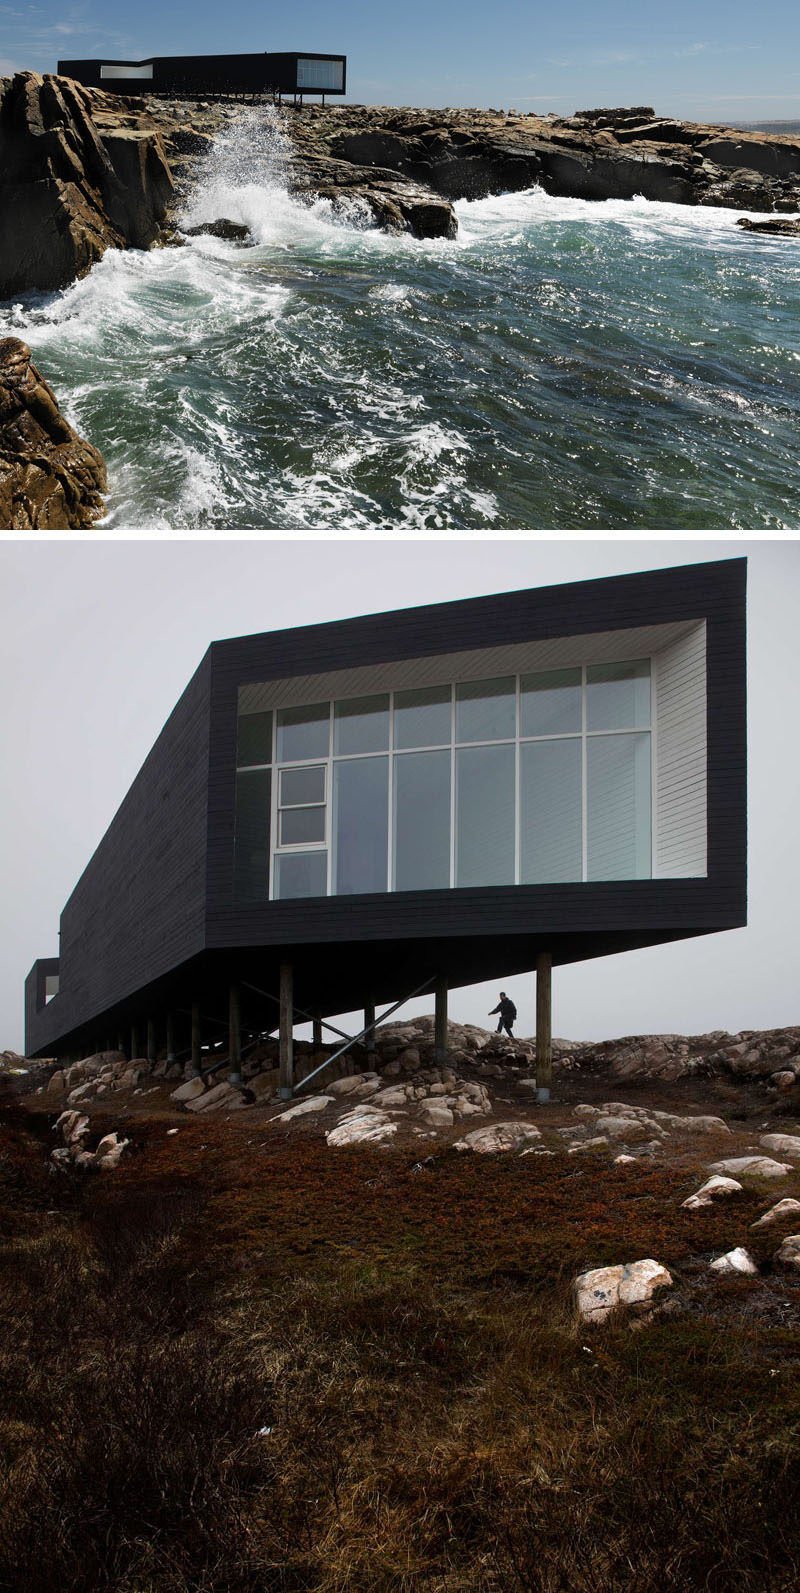 13 Totally Secluded Homes To Escape From The World // Off the coast of Newfoundland, Canada, on a tiny island called Fogo, sits a studio created by Saunders Architecture.